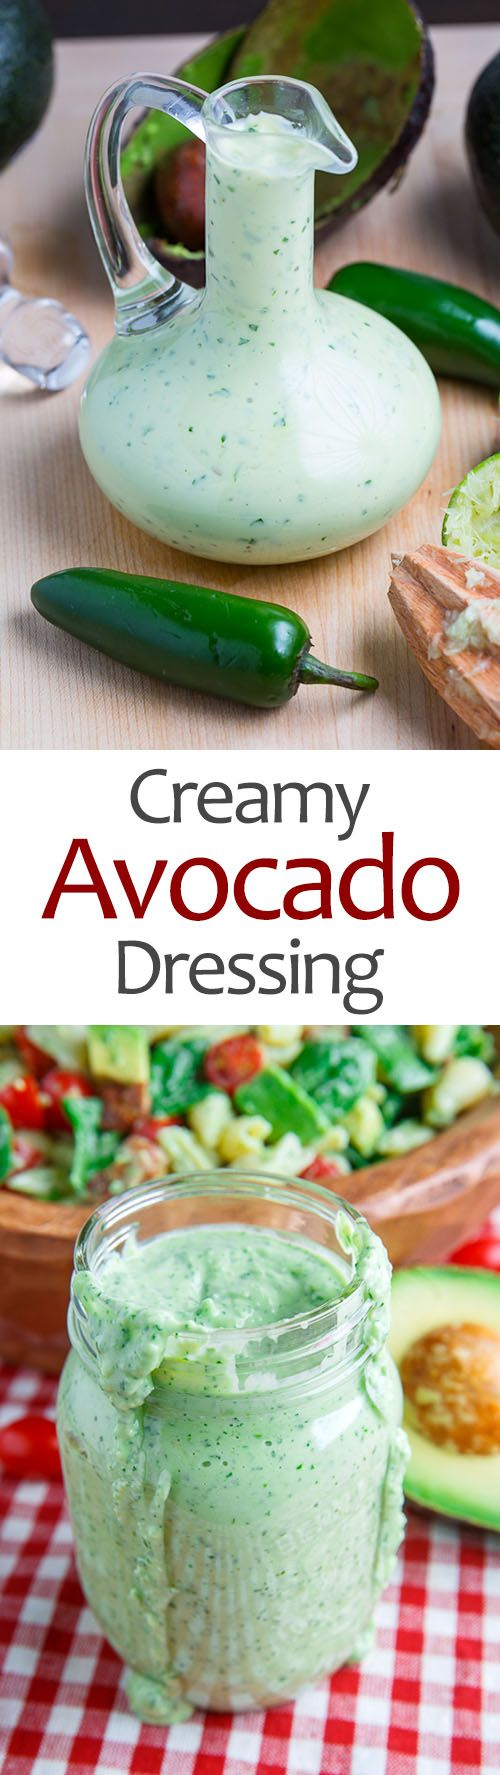 Creamy Avocado Dressing (aka Guacamole Buttermilk Dressing)